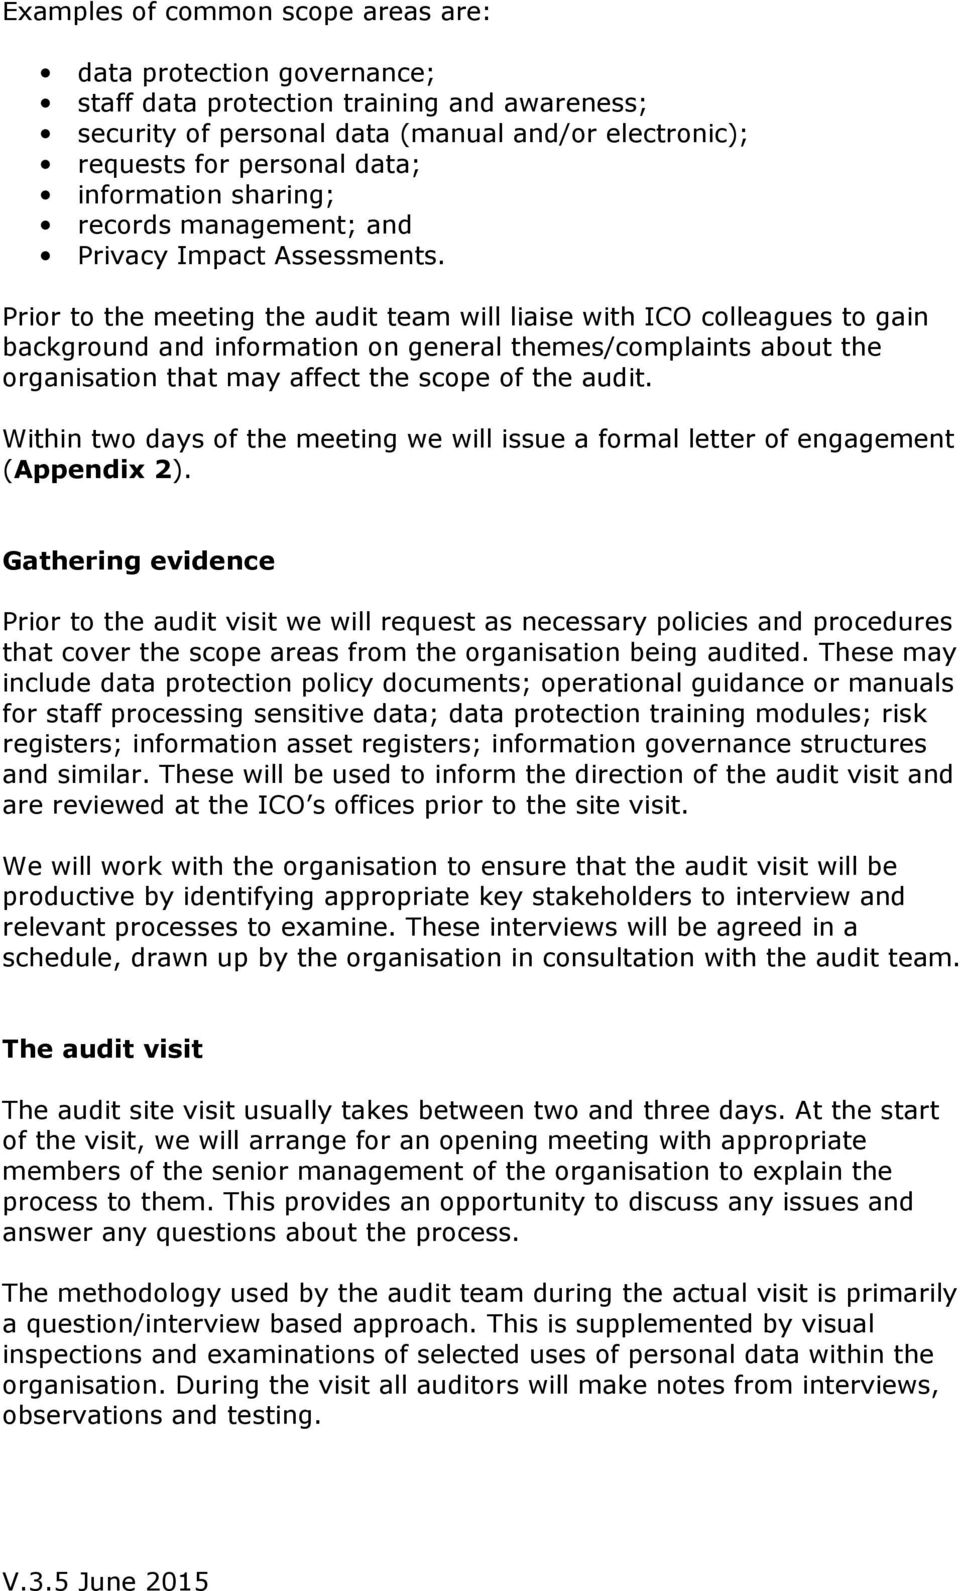 Prior to the meeting the audit team will liaise with ICO colleagues to gain background and information on general themes/complaints about the organisation that may affect the scope of the audit.